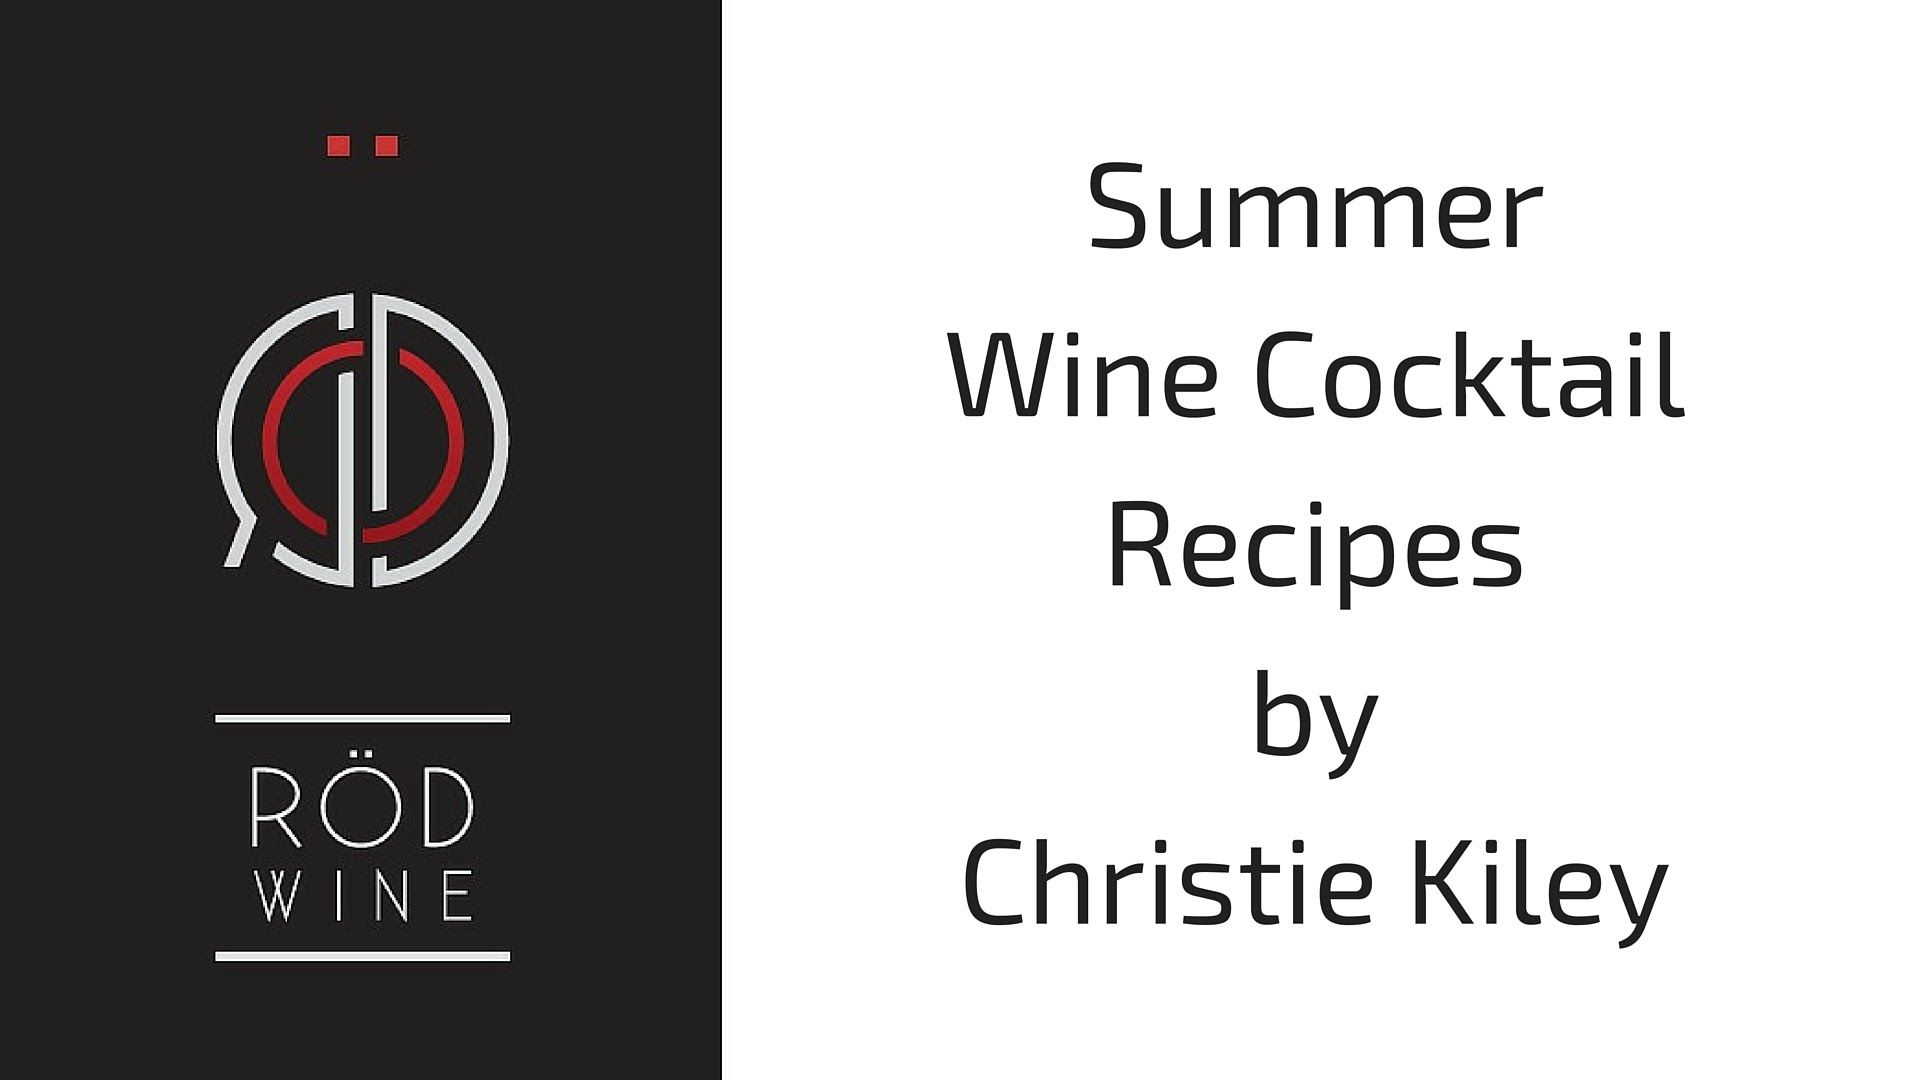 Summer Wine Cocktail Recipes